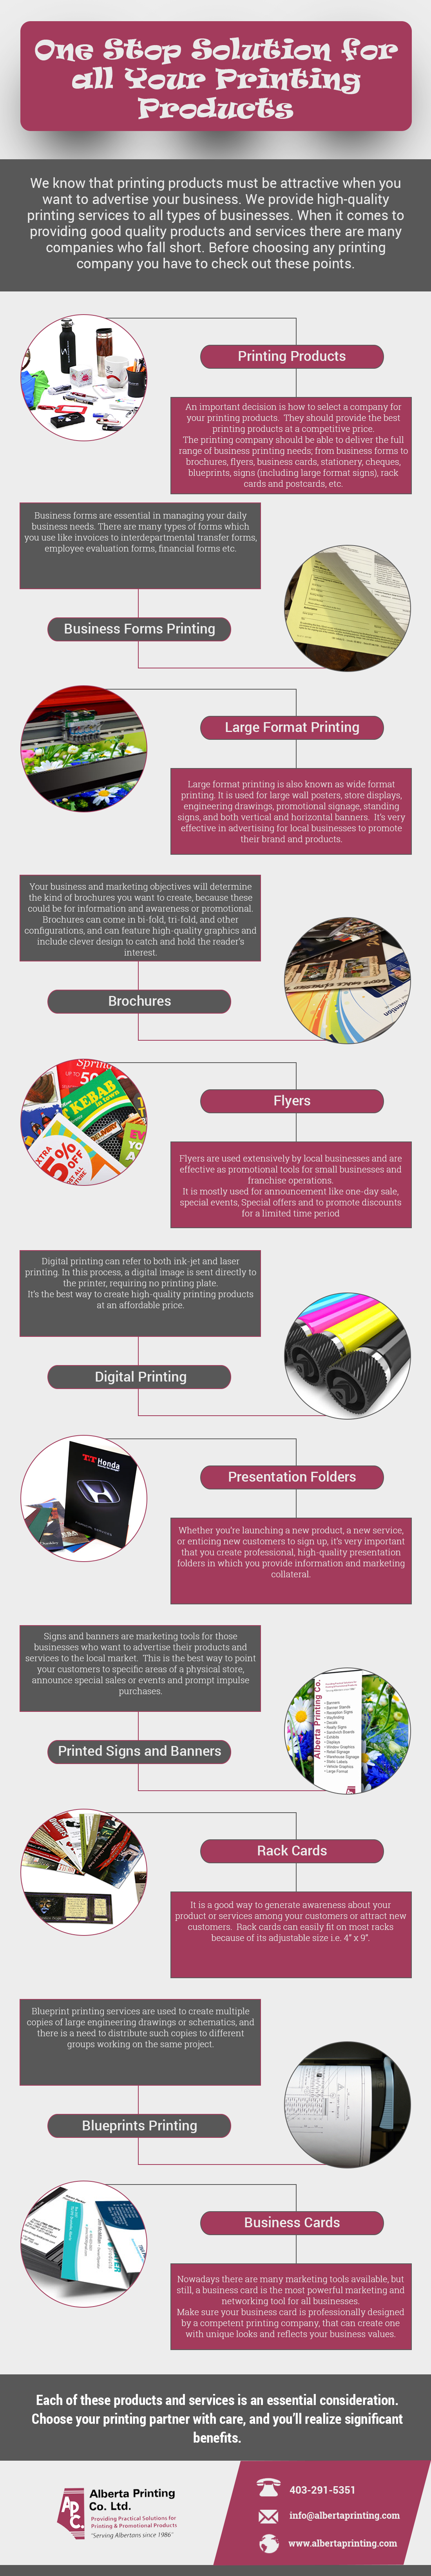 One Stop Solution for All Your Printing Products